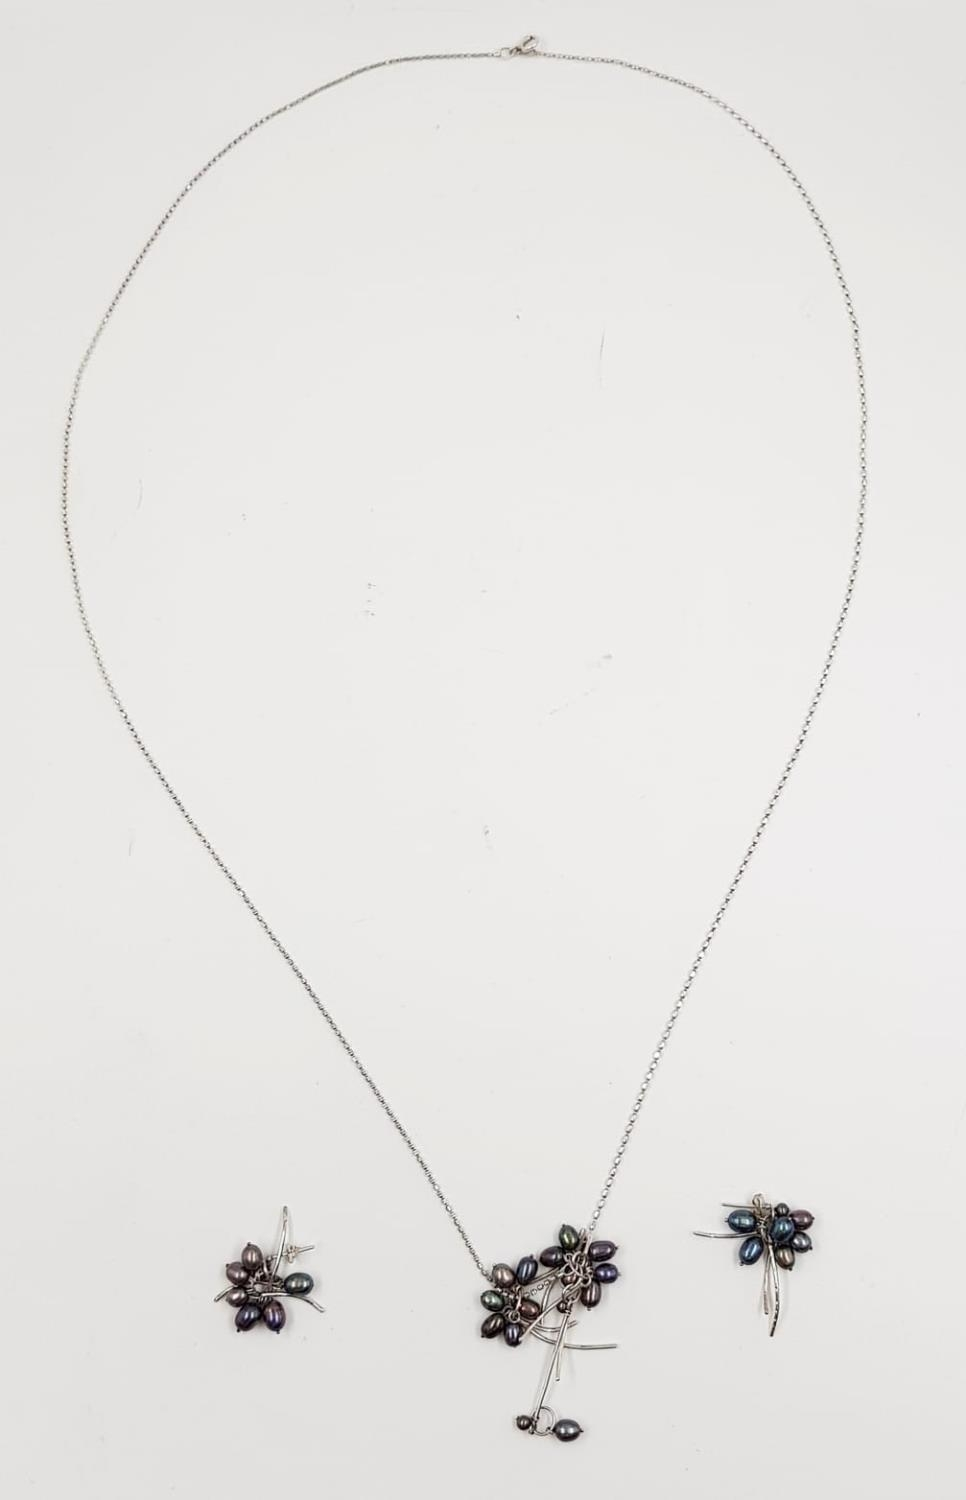 A black pearl and silver necklace with earring set. Weighs 15.4g and length is 84cm.